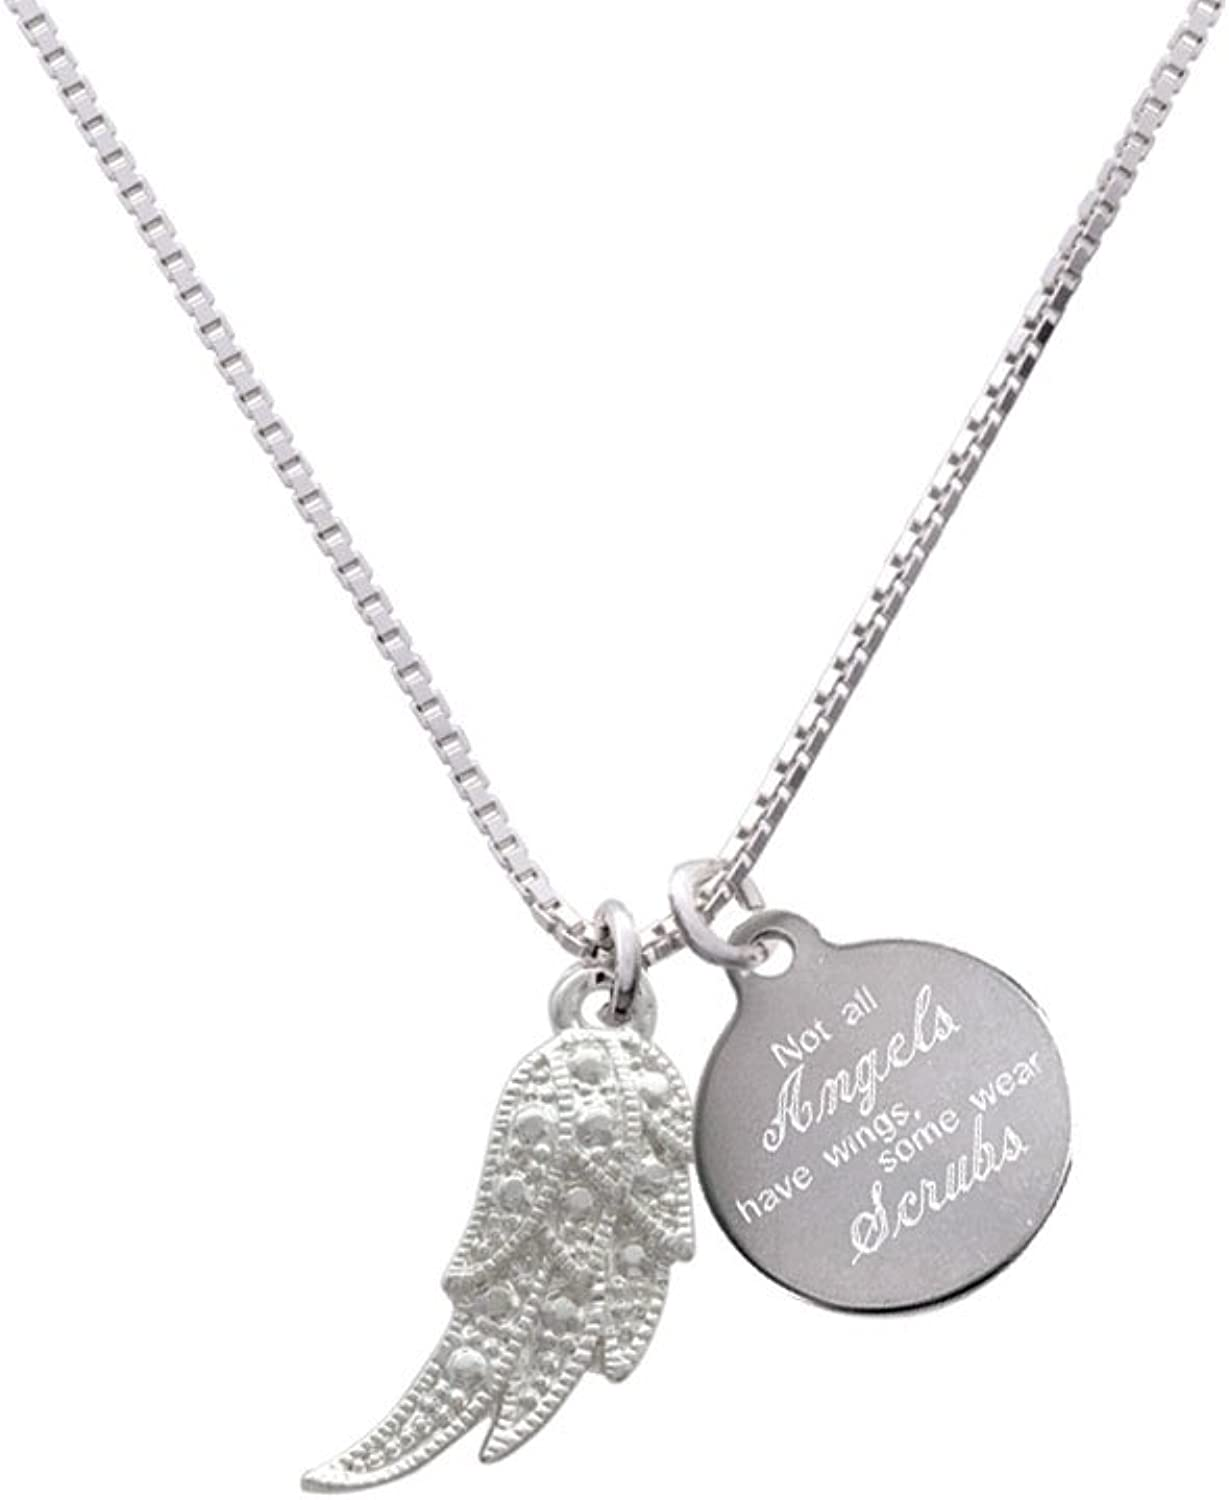 Delight Jewelry Textured Wing Angels Wear Scrubs Engraved Necklace